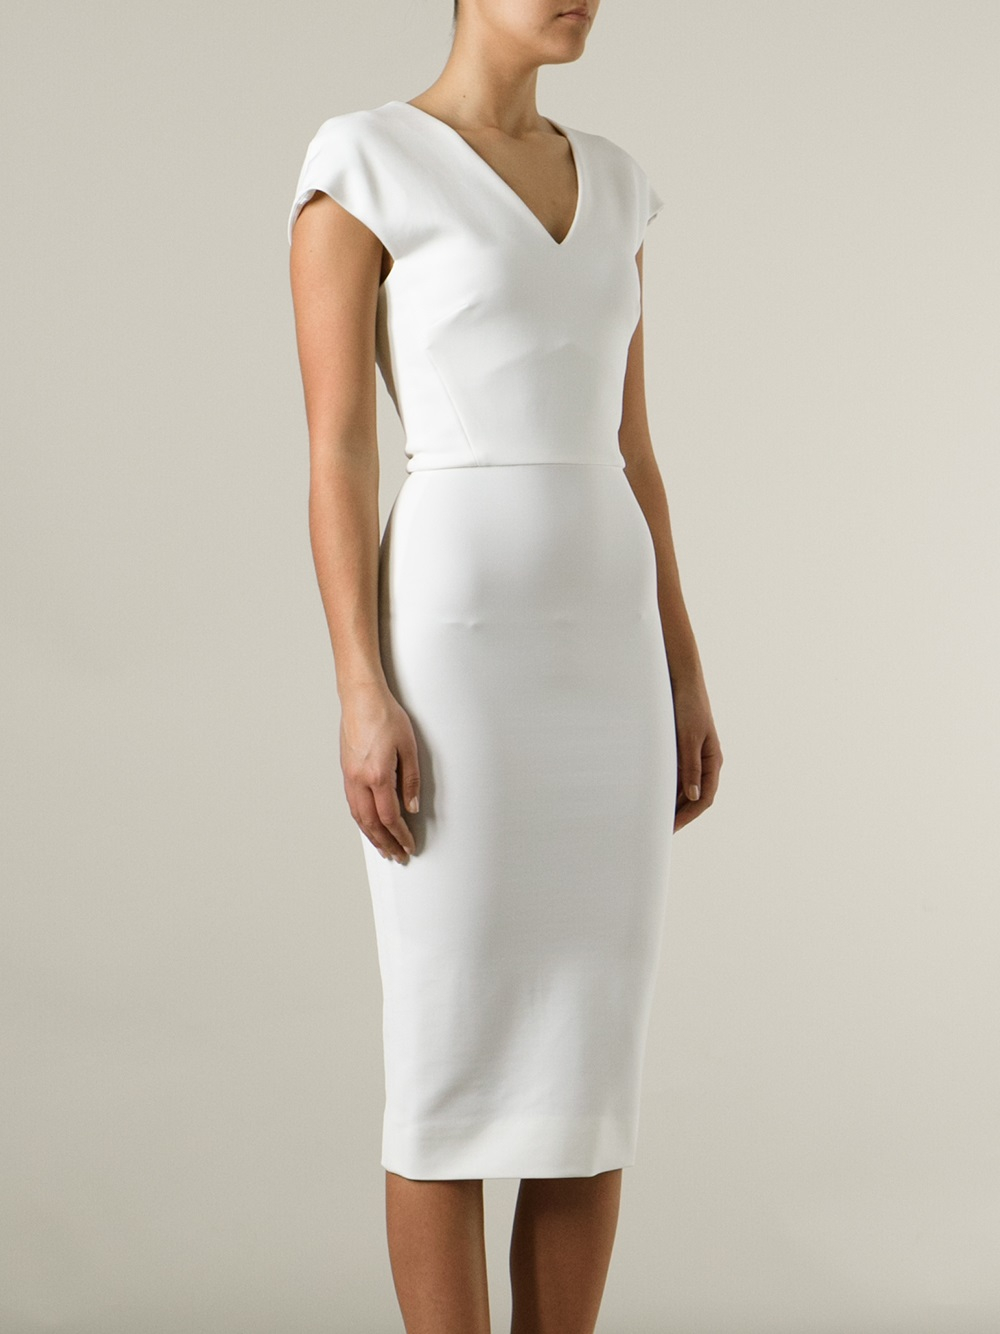 Victoria beckham Fitted Pencil Dress in White | Lyst